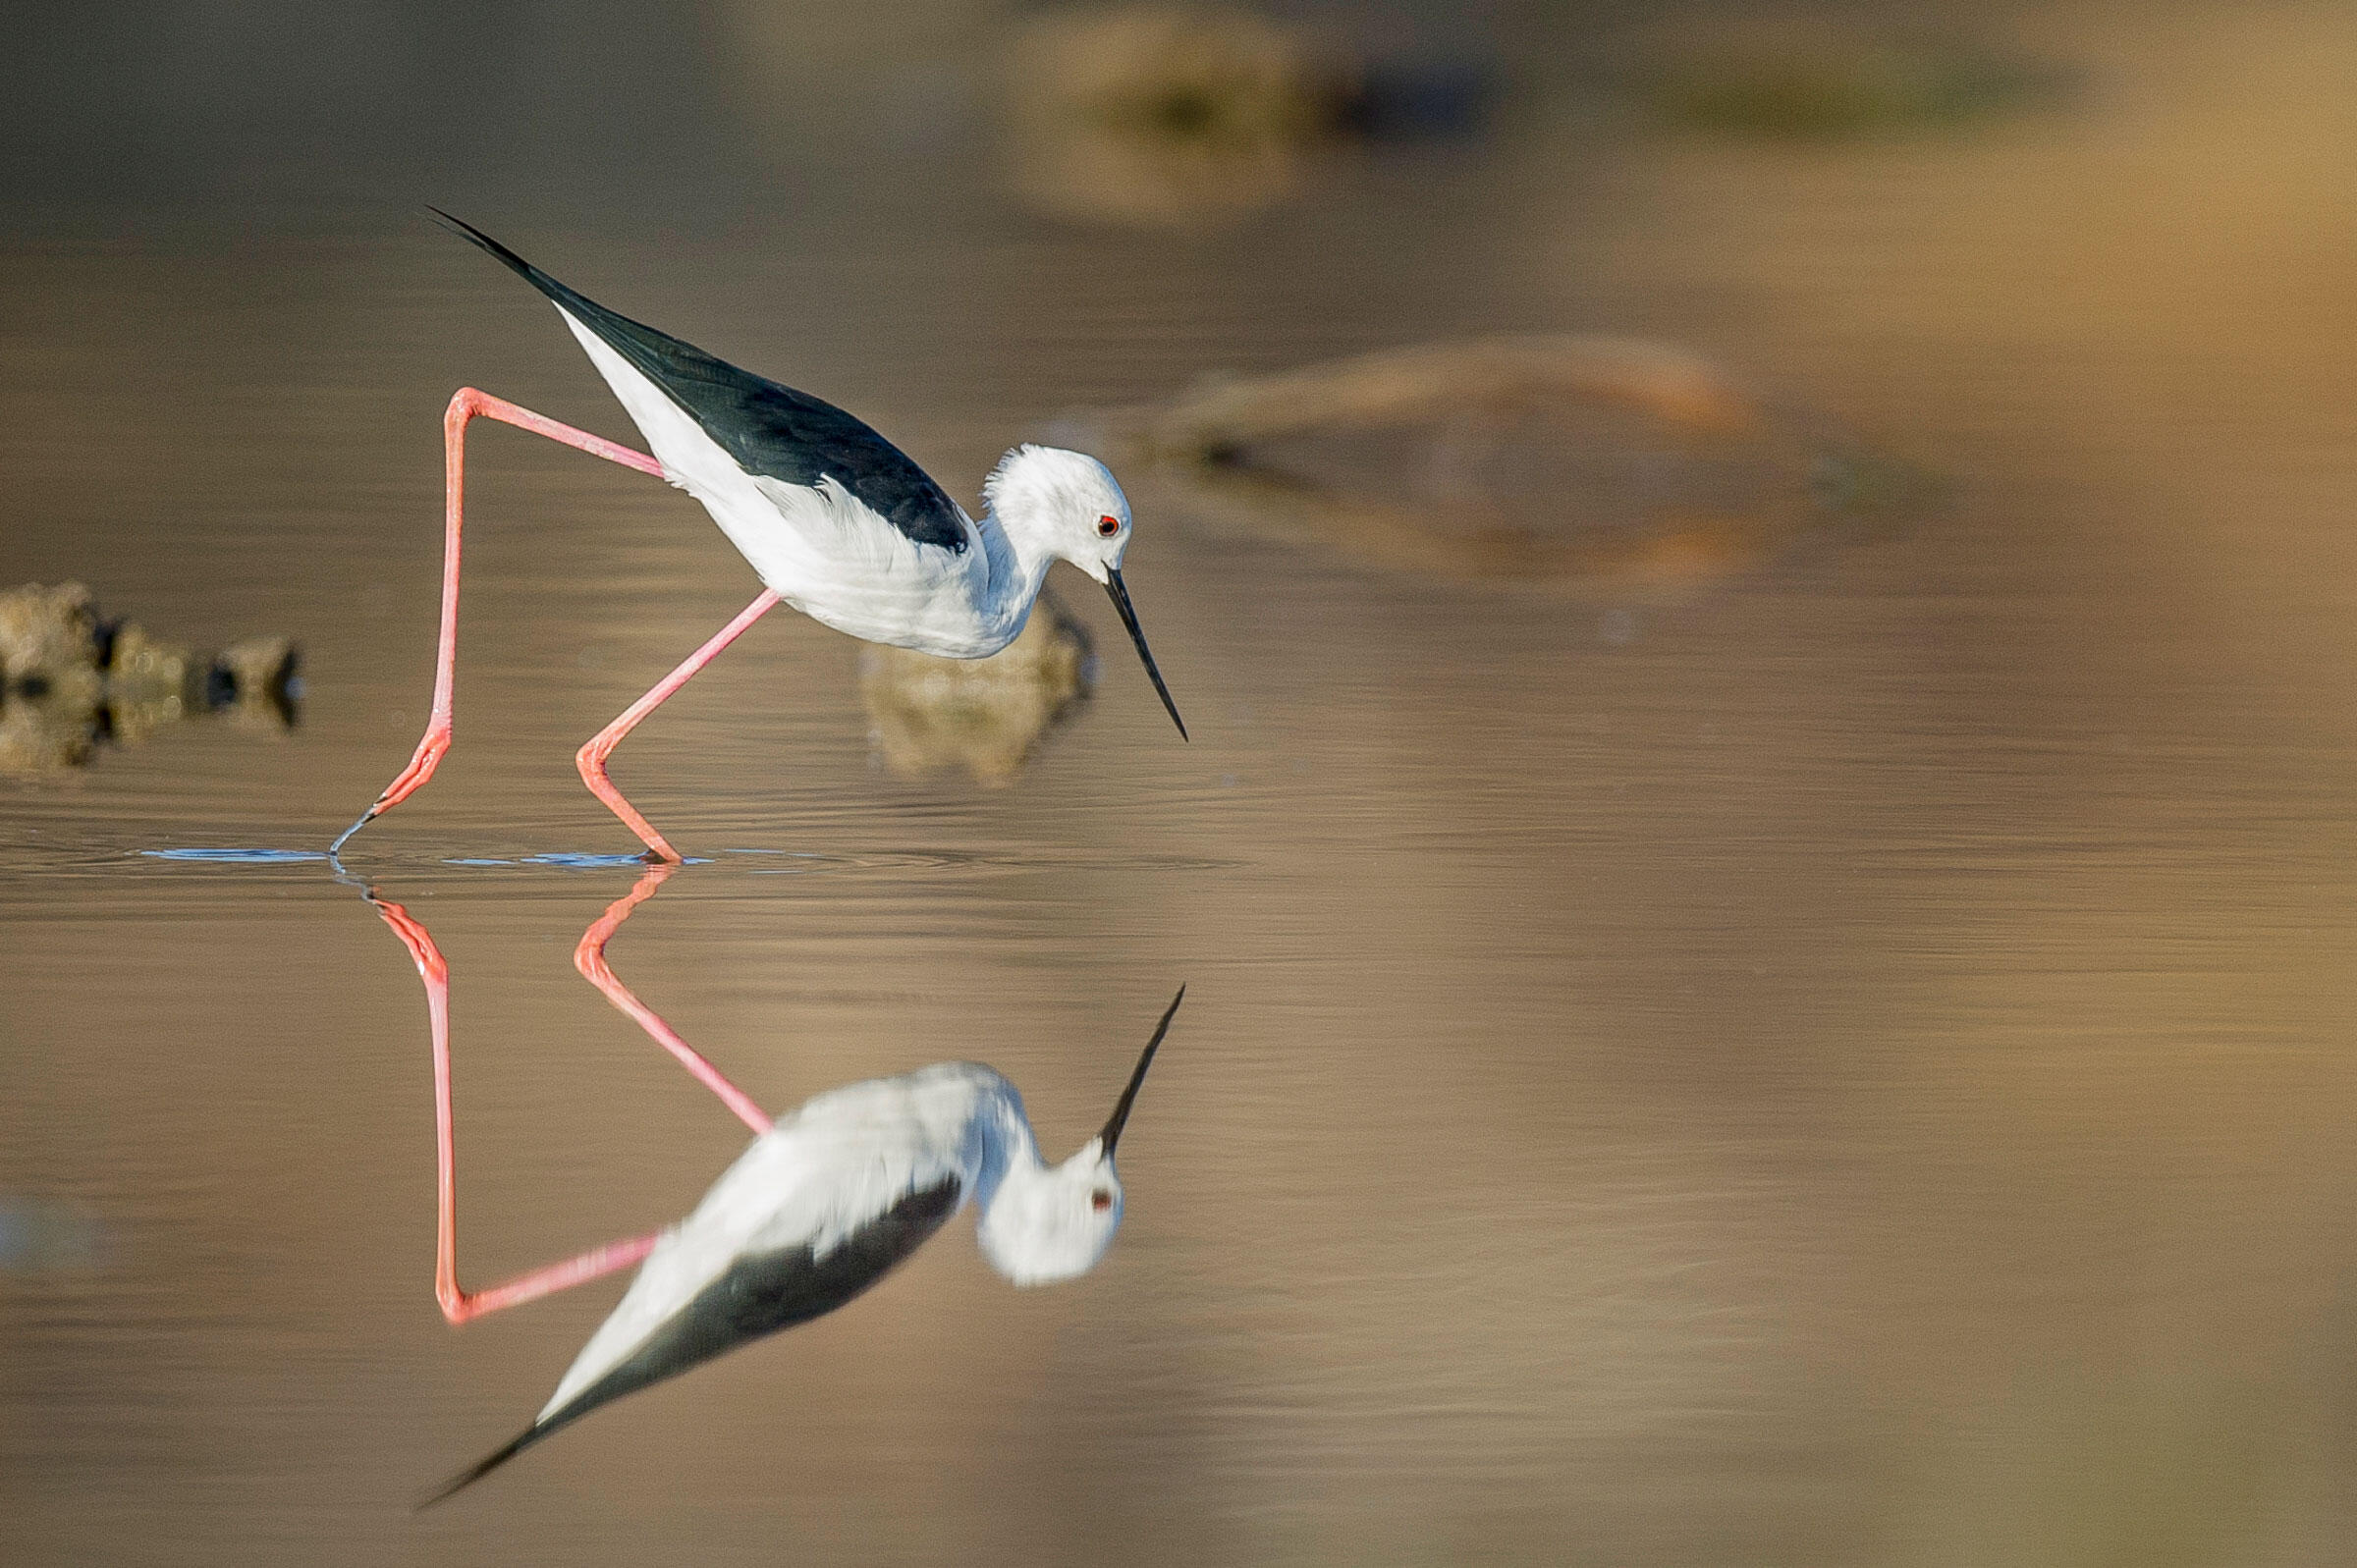 The Black-winged Stilt is a graceful wader found at the edge of many of the lakes and rivers in the Selous. Robert J. Ross